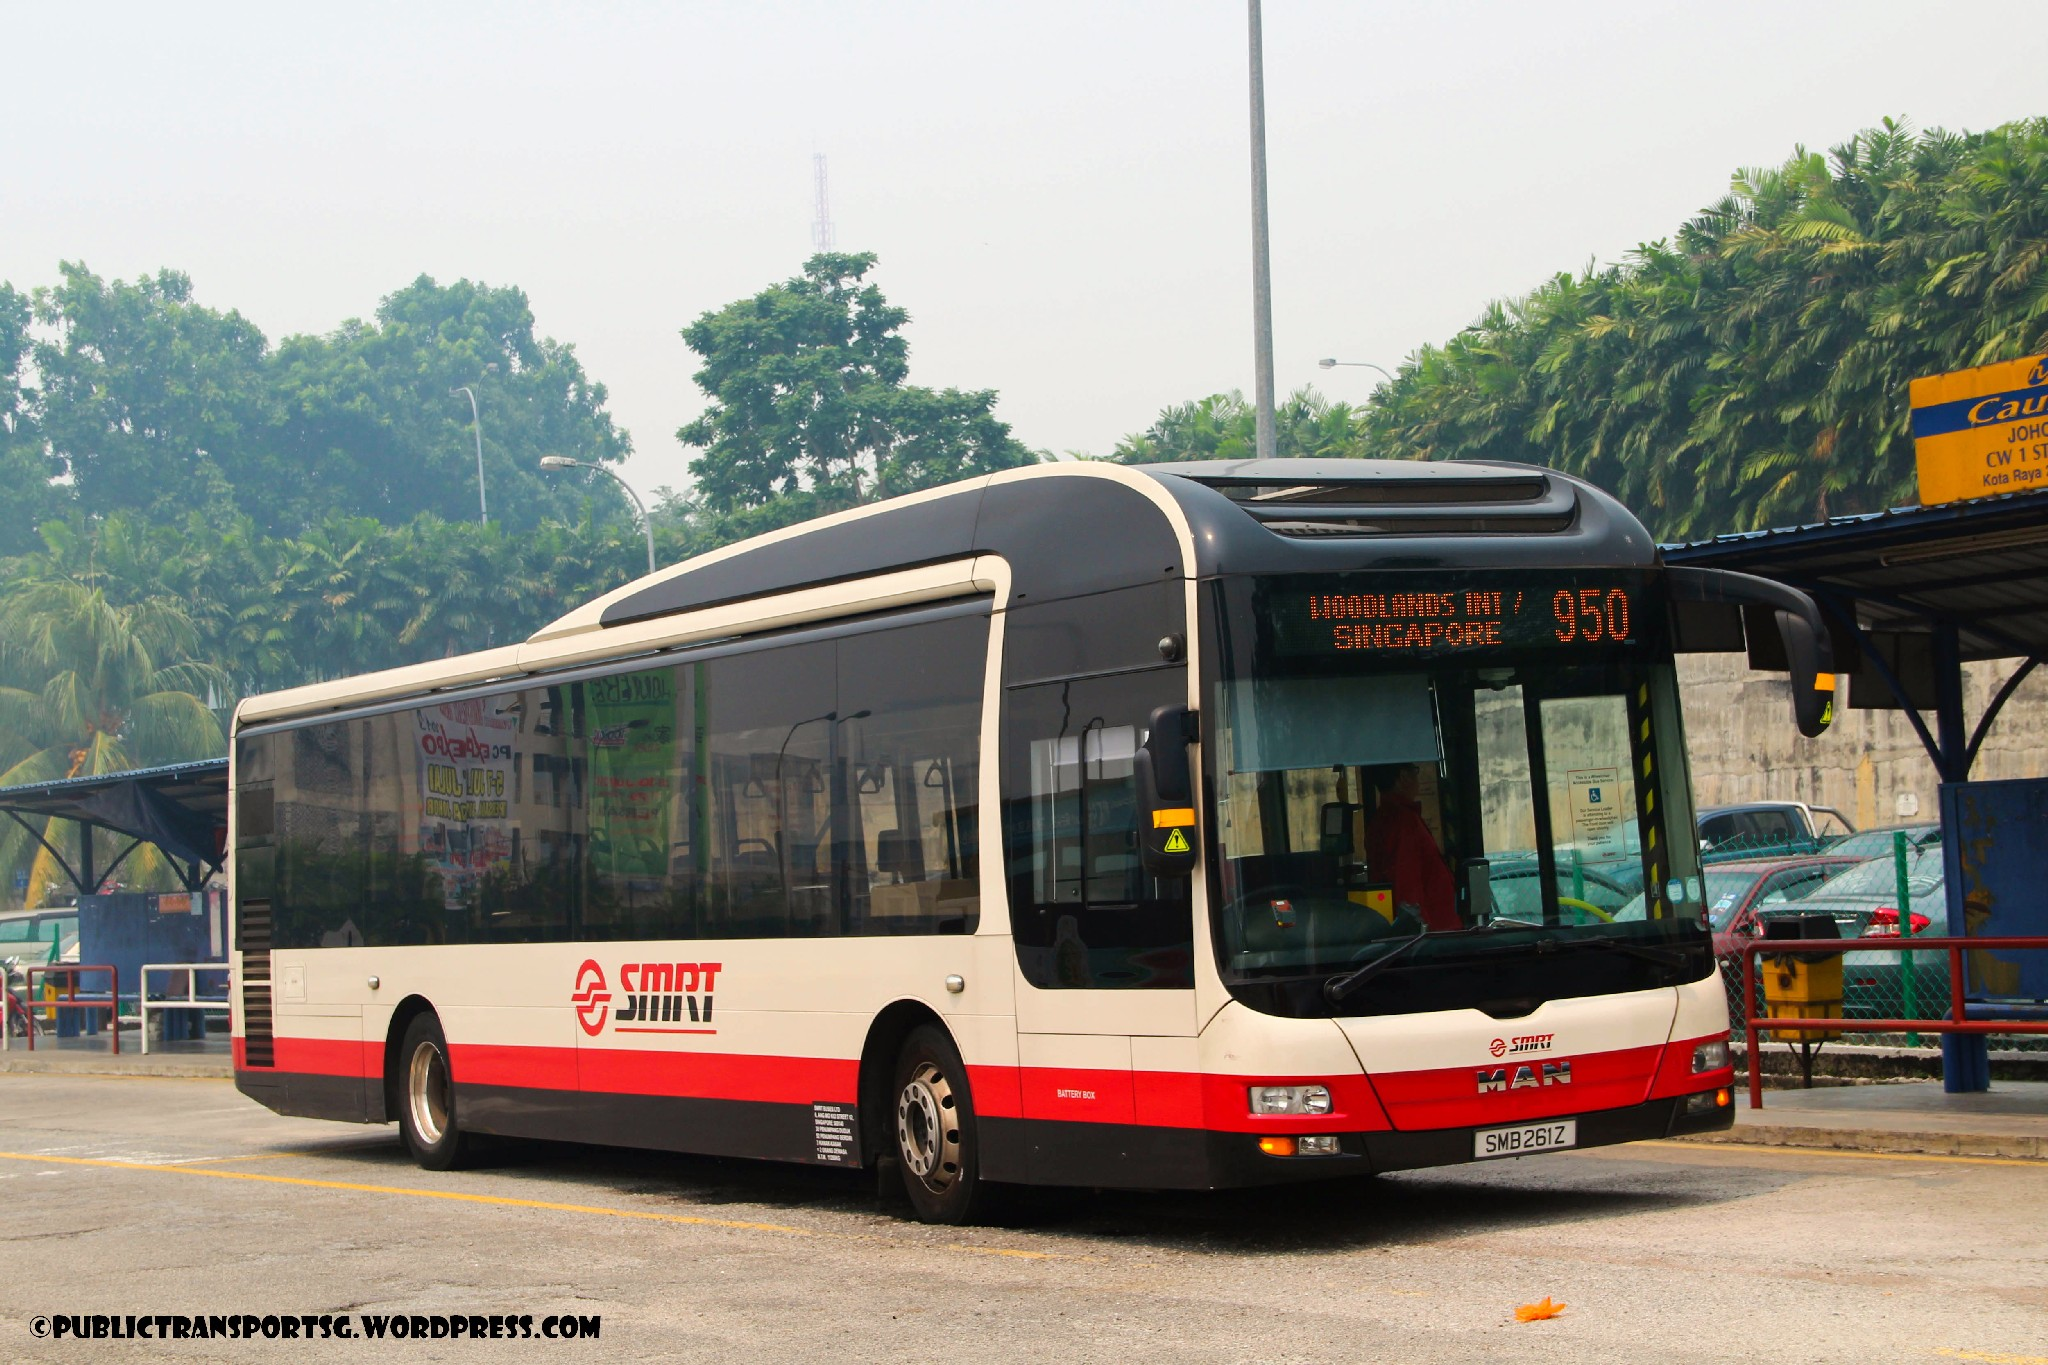 smrt bus service 950 public transport sg. Black Bedroom Furniture Sets. Home Design Ideas